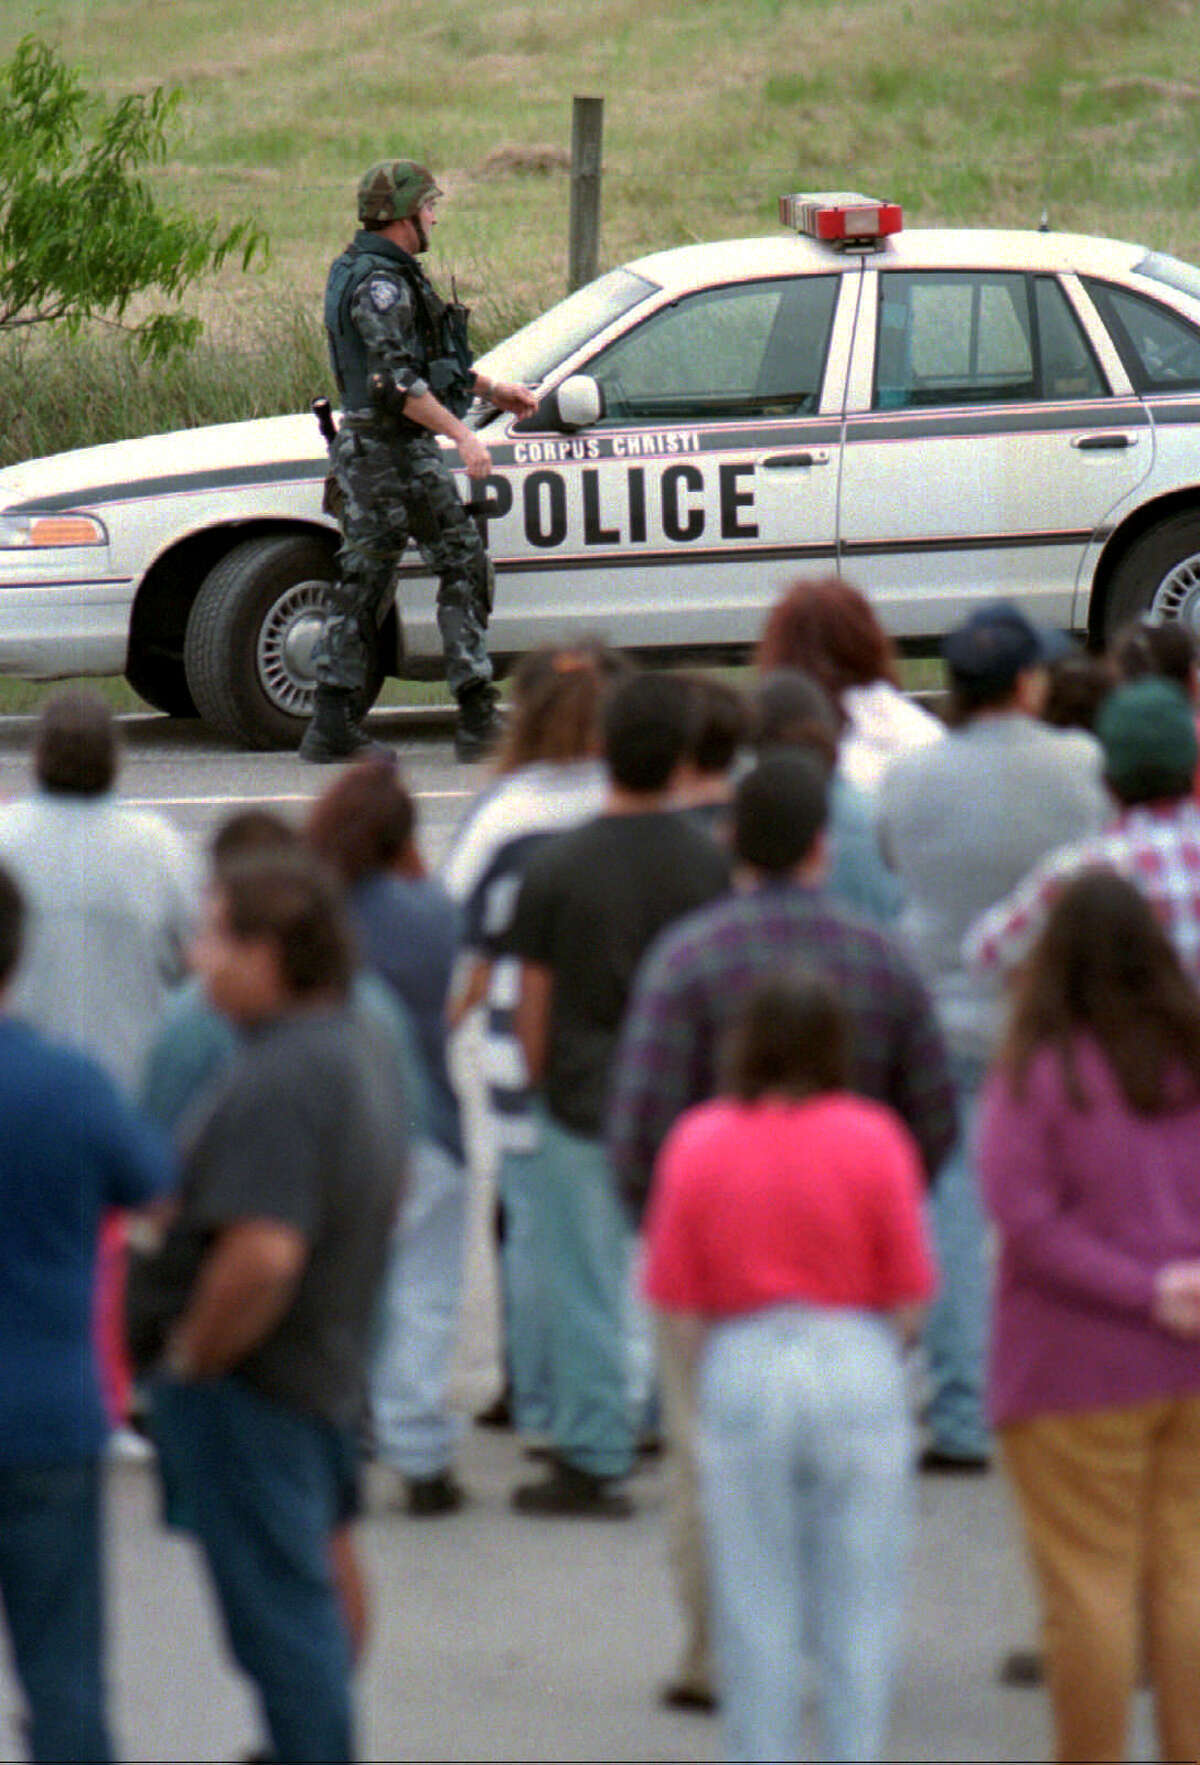 A Corpus Christi police officer leaves his patrol car enroute back to the scene of a standoff between police and Yolanda Saldivar Friday afternoon, March 31, 1995. Saldivar held police at bay for over nine hours, threatening to kill herself, before surrendering late Friday night. She is accused of killing Tejano singer Selena in a motel room before barricading herself in a pickup truck in the motel's parking lot.